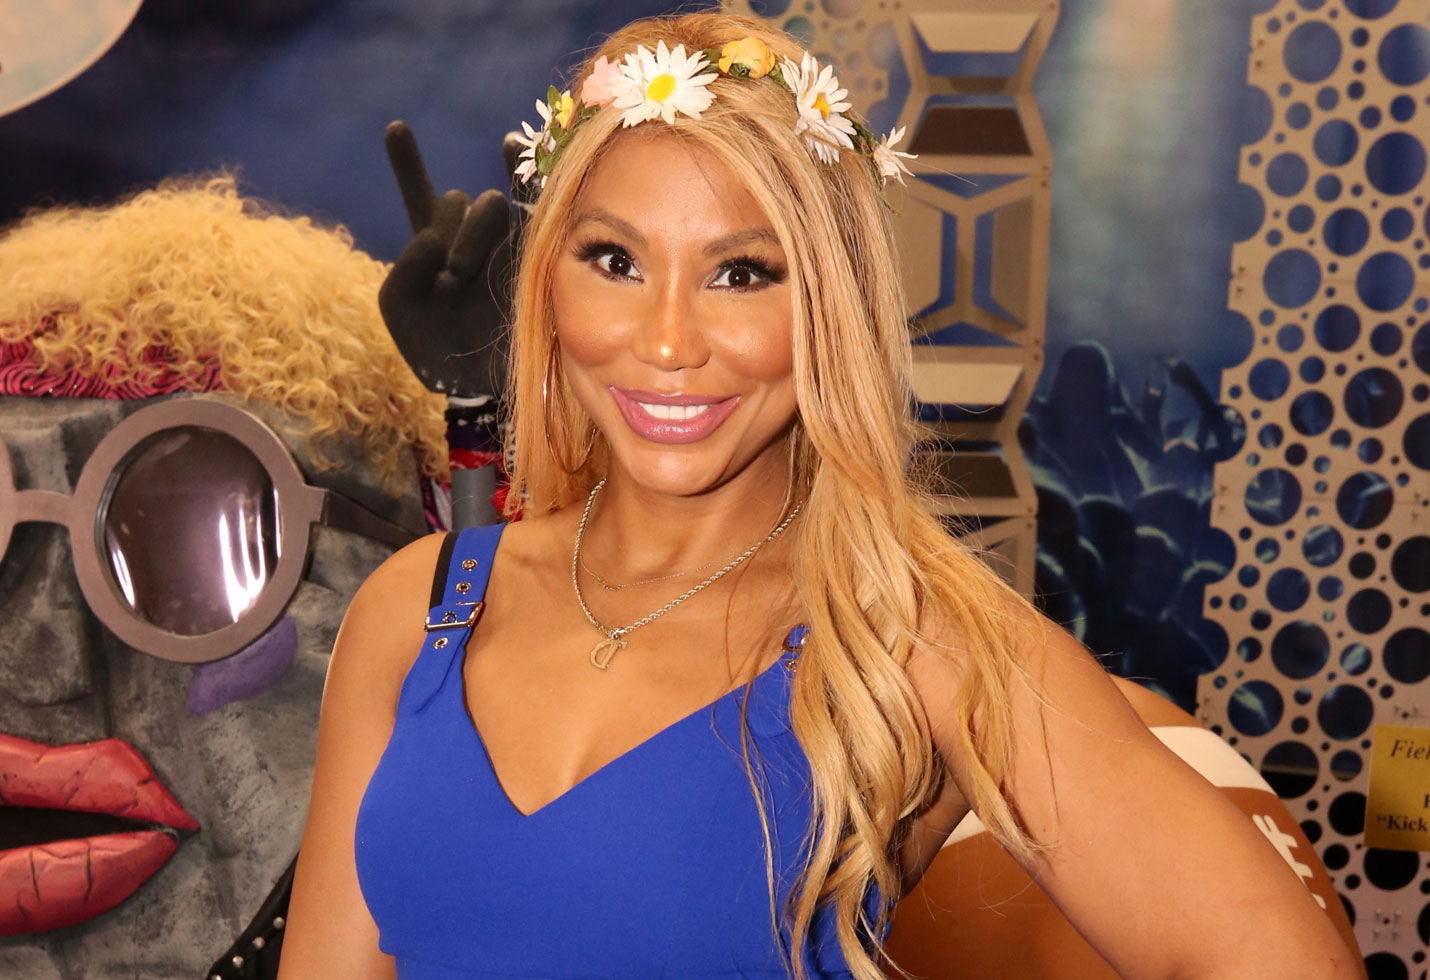 Tamar Braxton Shares Photos From The Set Of 'The Bold And The Beautiful' Telling Fans How She Used To Dream About Marrying Don Diamontt